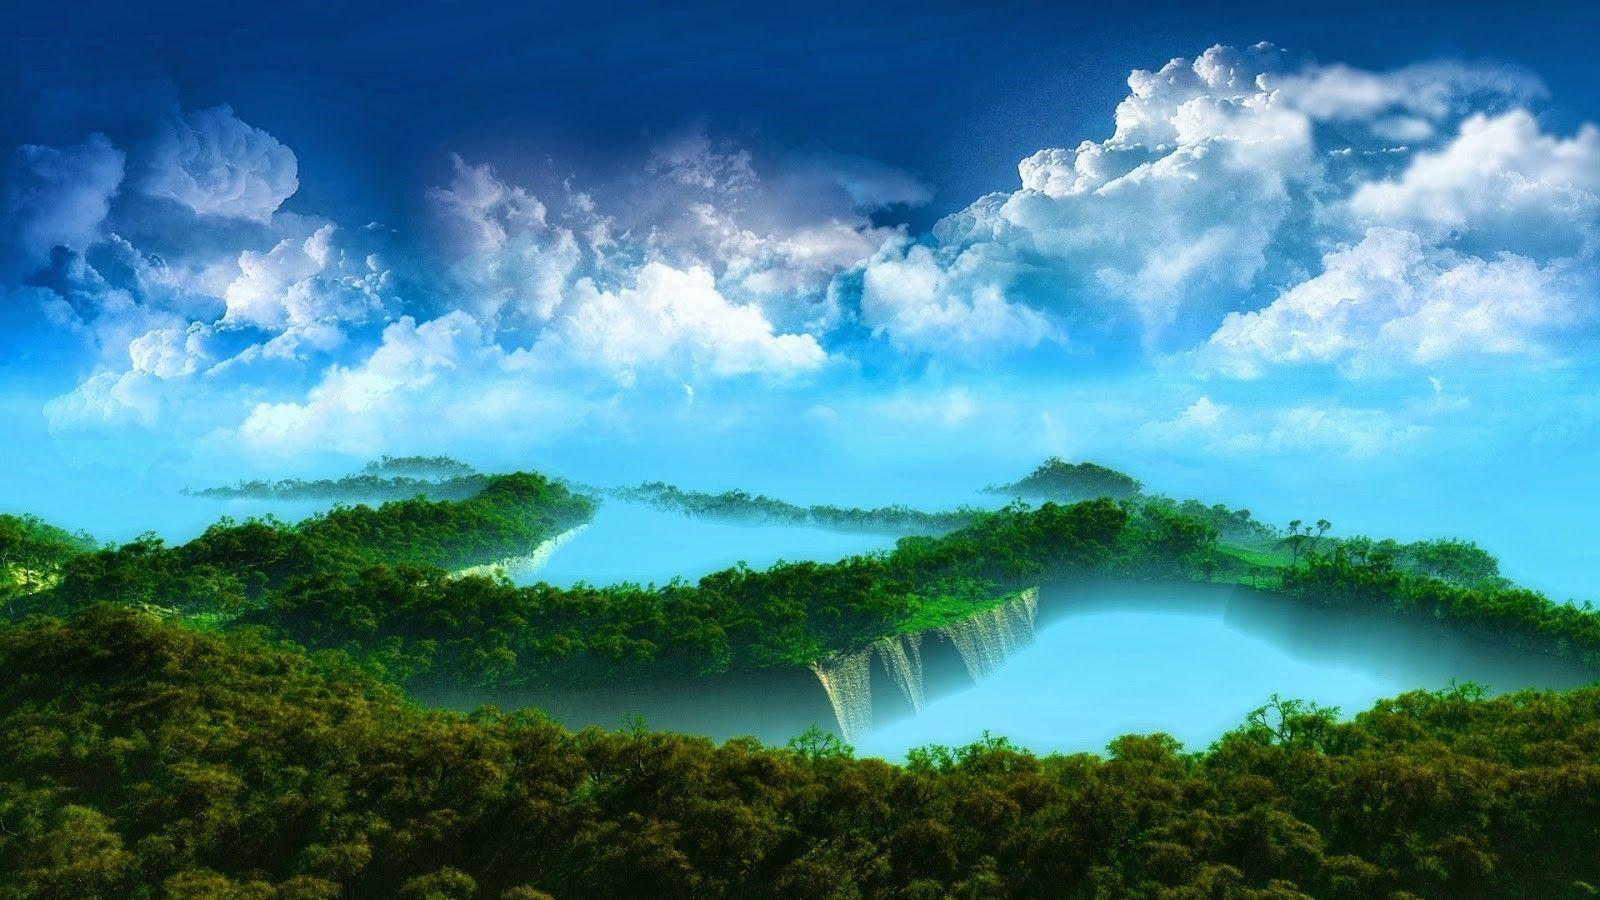 1600x900 Hd Wallpapers Pack Wallpaper Cave